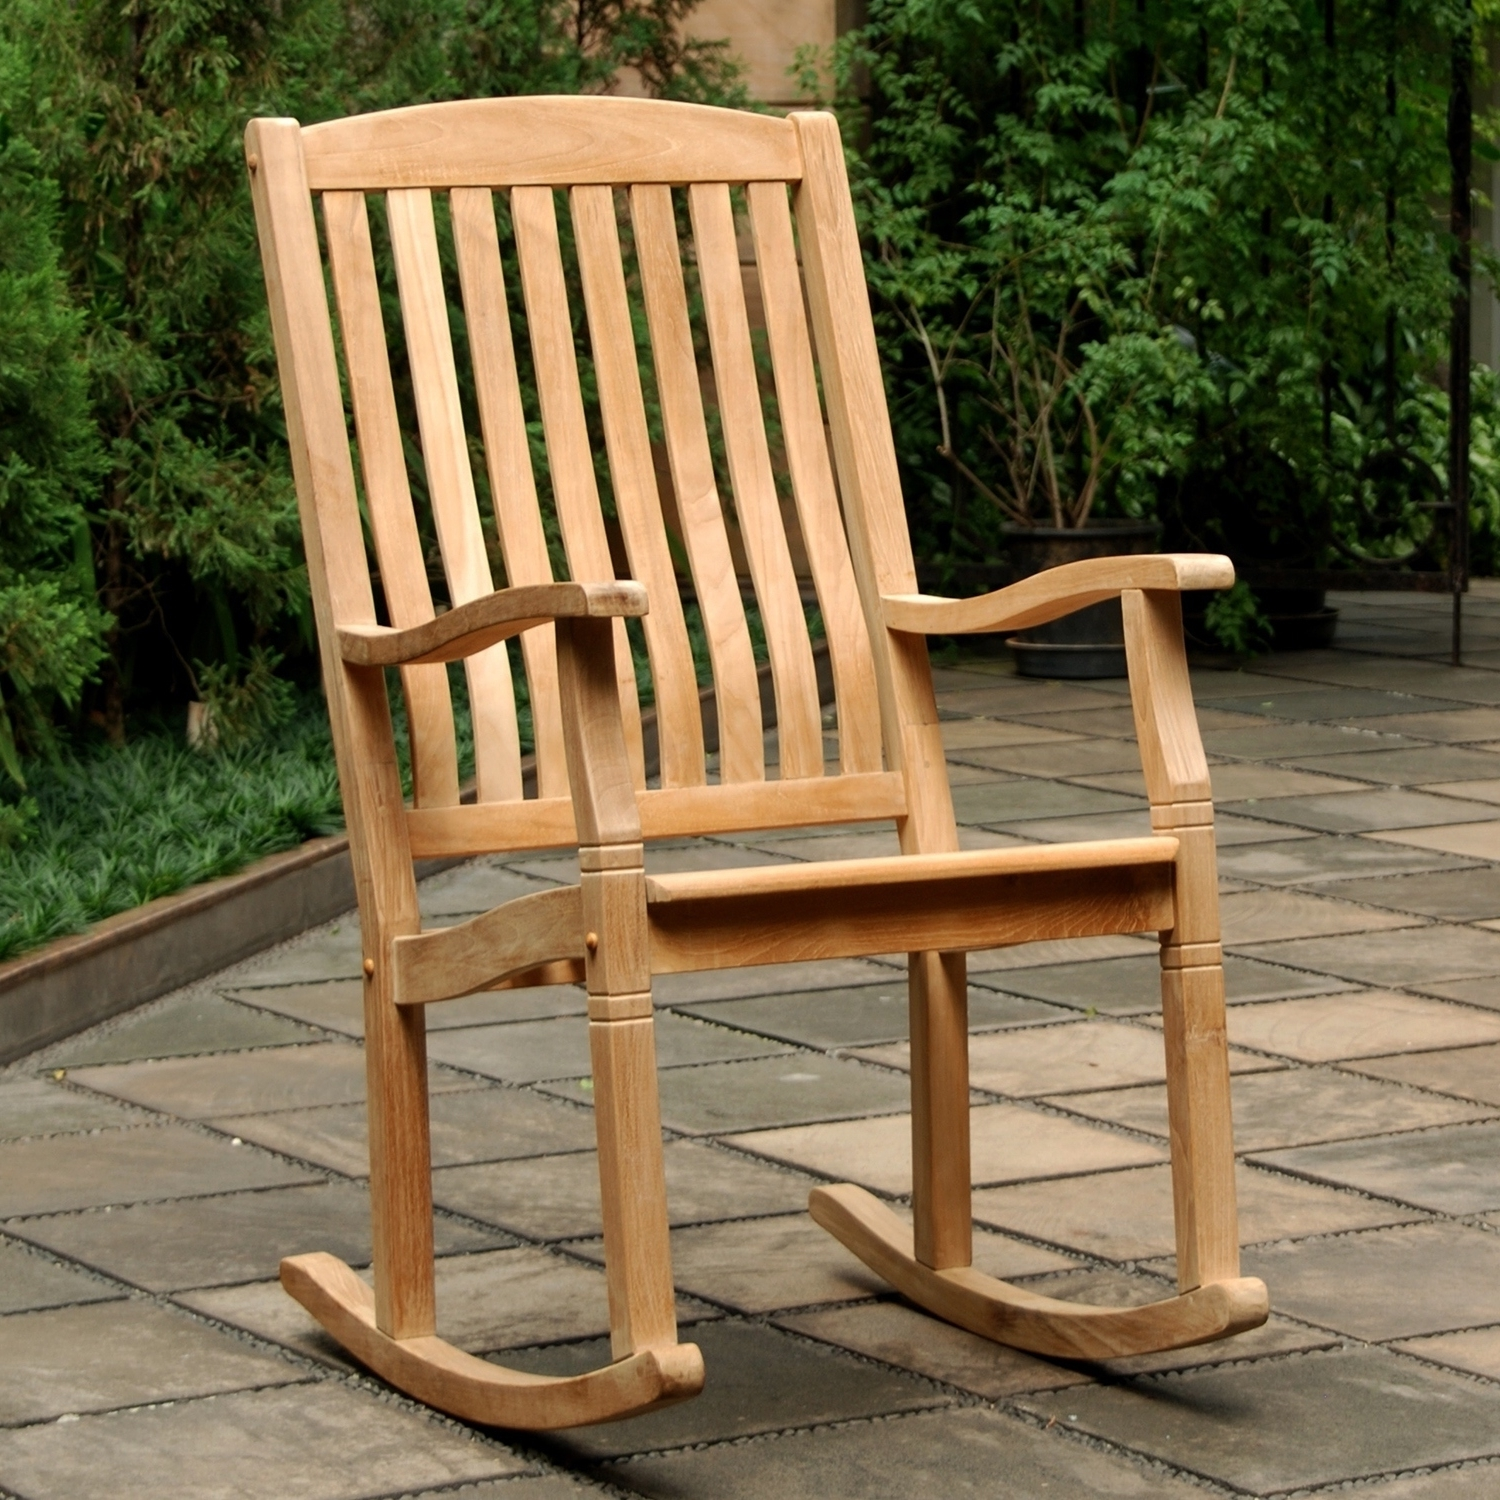 Most Popular Teak Patio Rocking Chairs Pertaining To Teak Patio Furniture (View 8 of 15)